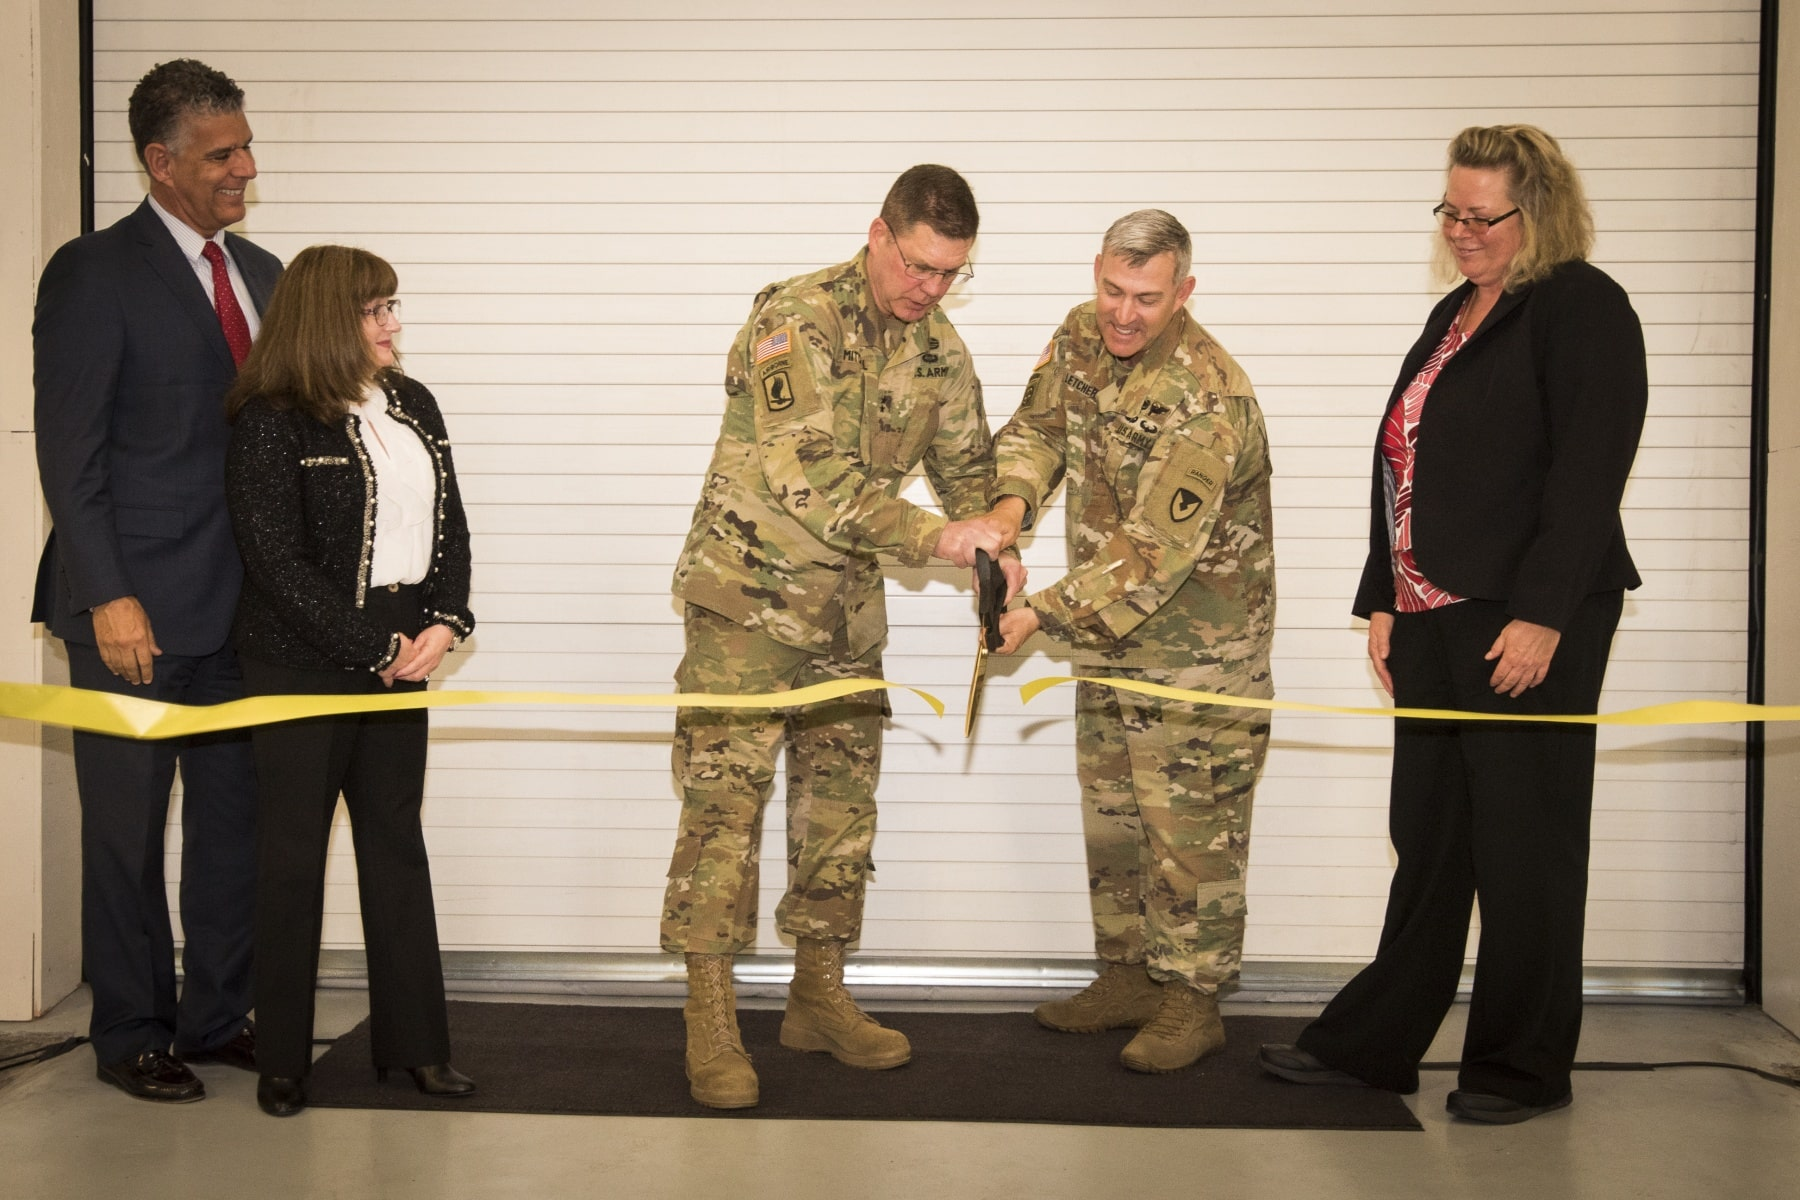 Gen. Daniel Mitchell (center left), commanding general, U.S. Army Tank-Automotive and Armaments Command, and Col. Ken Letcher (center right), commander, Rock Island Arsenal Joint Manufacturing and Technology Center, cut the ribbon on the new Advanced and Additive Manufacturing Center of Excellence at Rock Island Arsenal, Illinois, May 15. (U.S. Army photo by Kevin Fleming/Army Sustainment Command) (Photo Credit: Courtesy of U.S. Army RIA-JMTC)